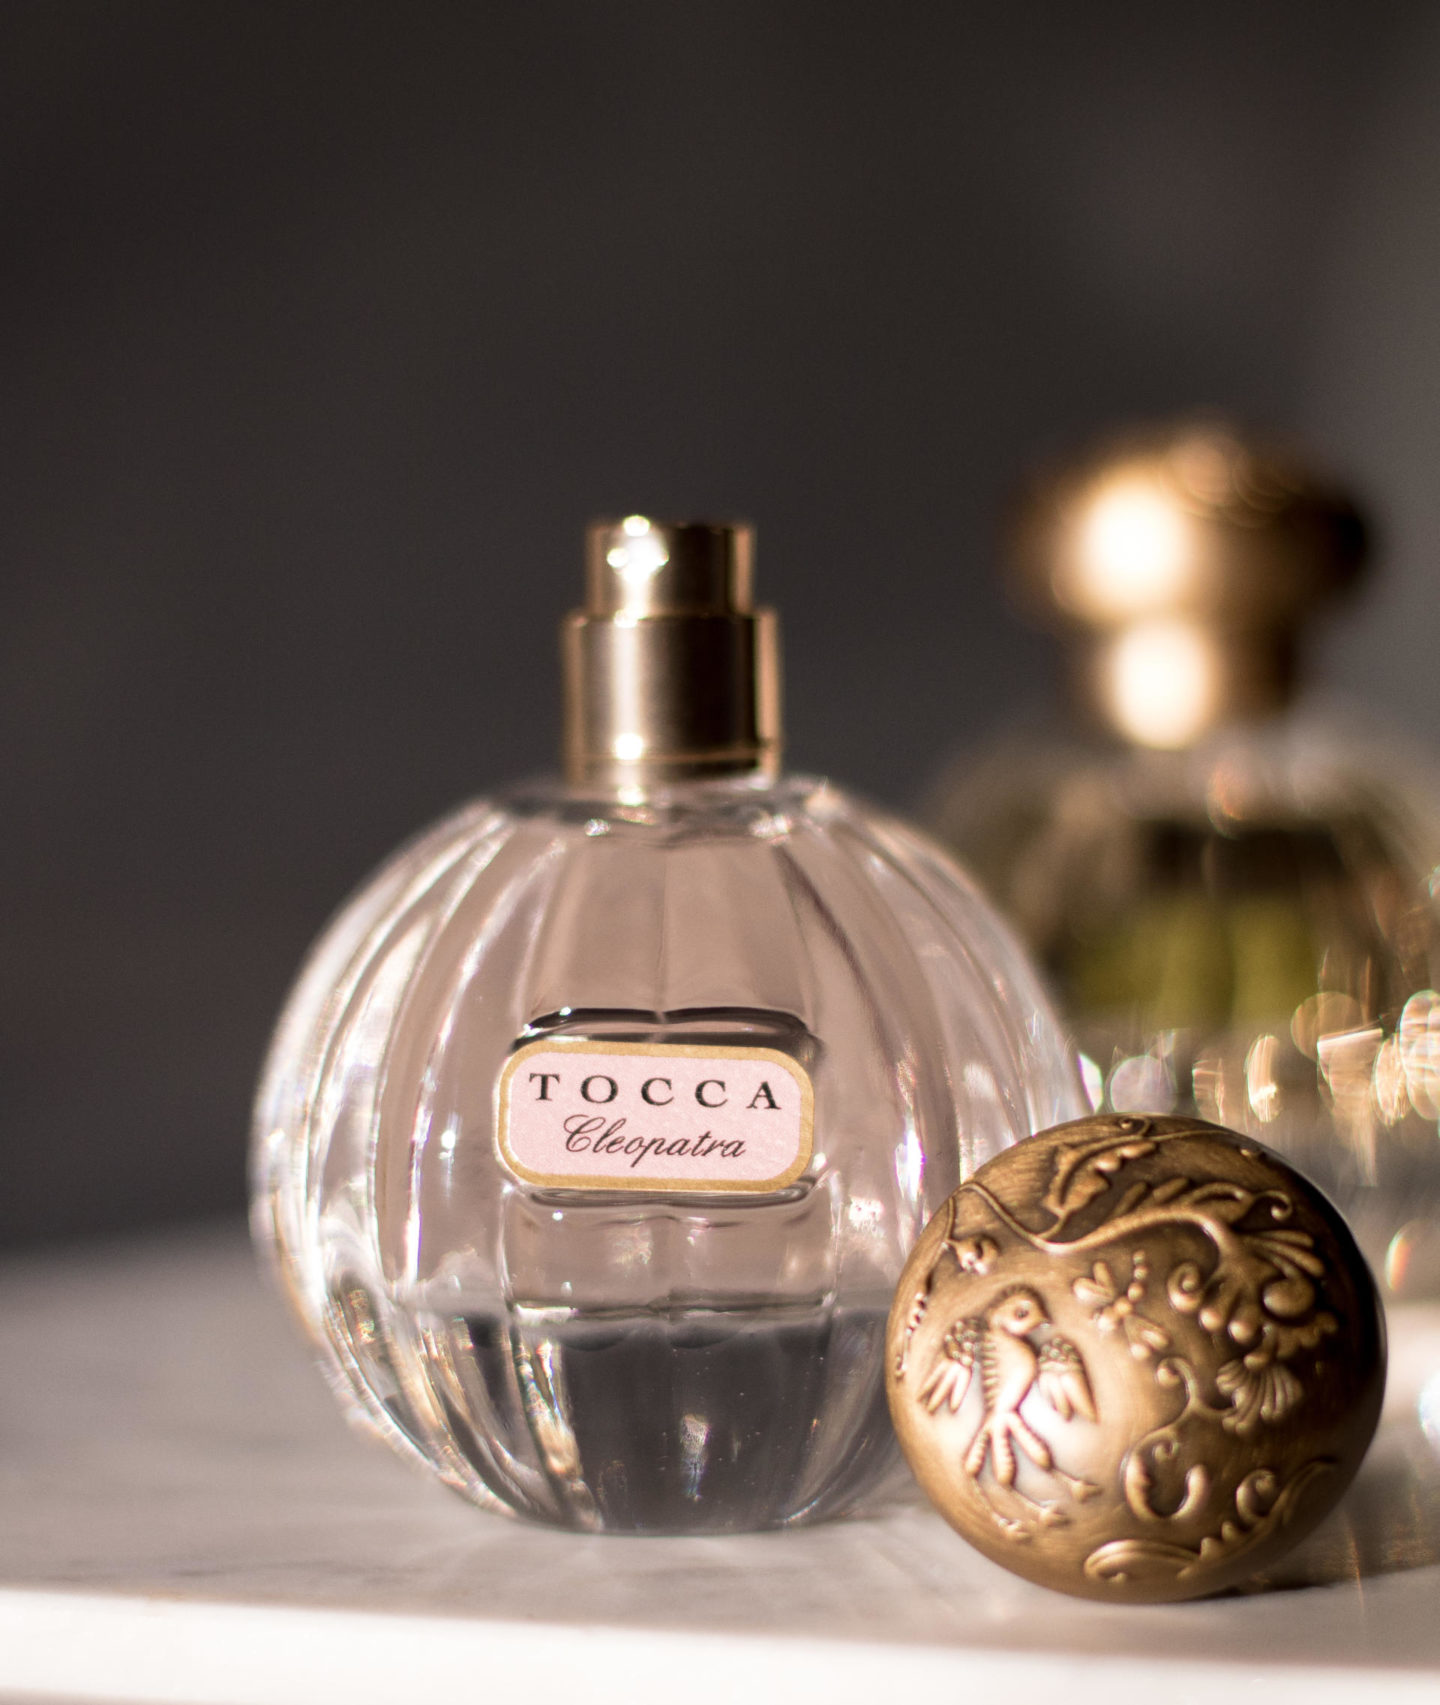 Tocca Cleopatra perfume on a vanity